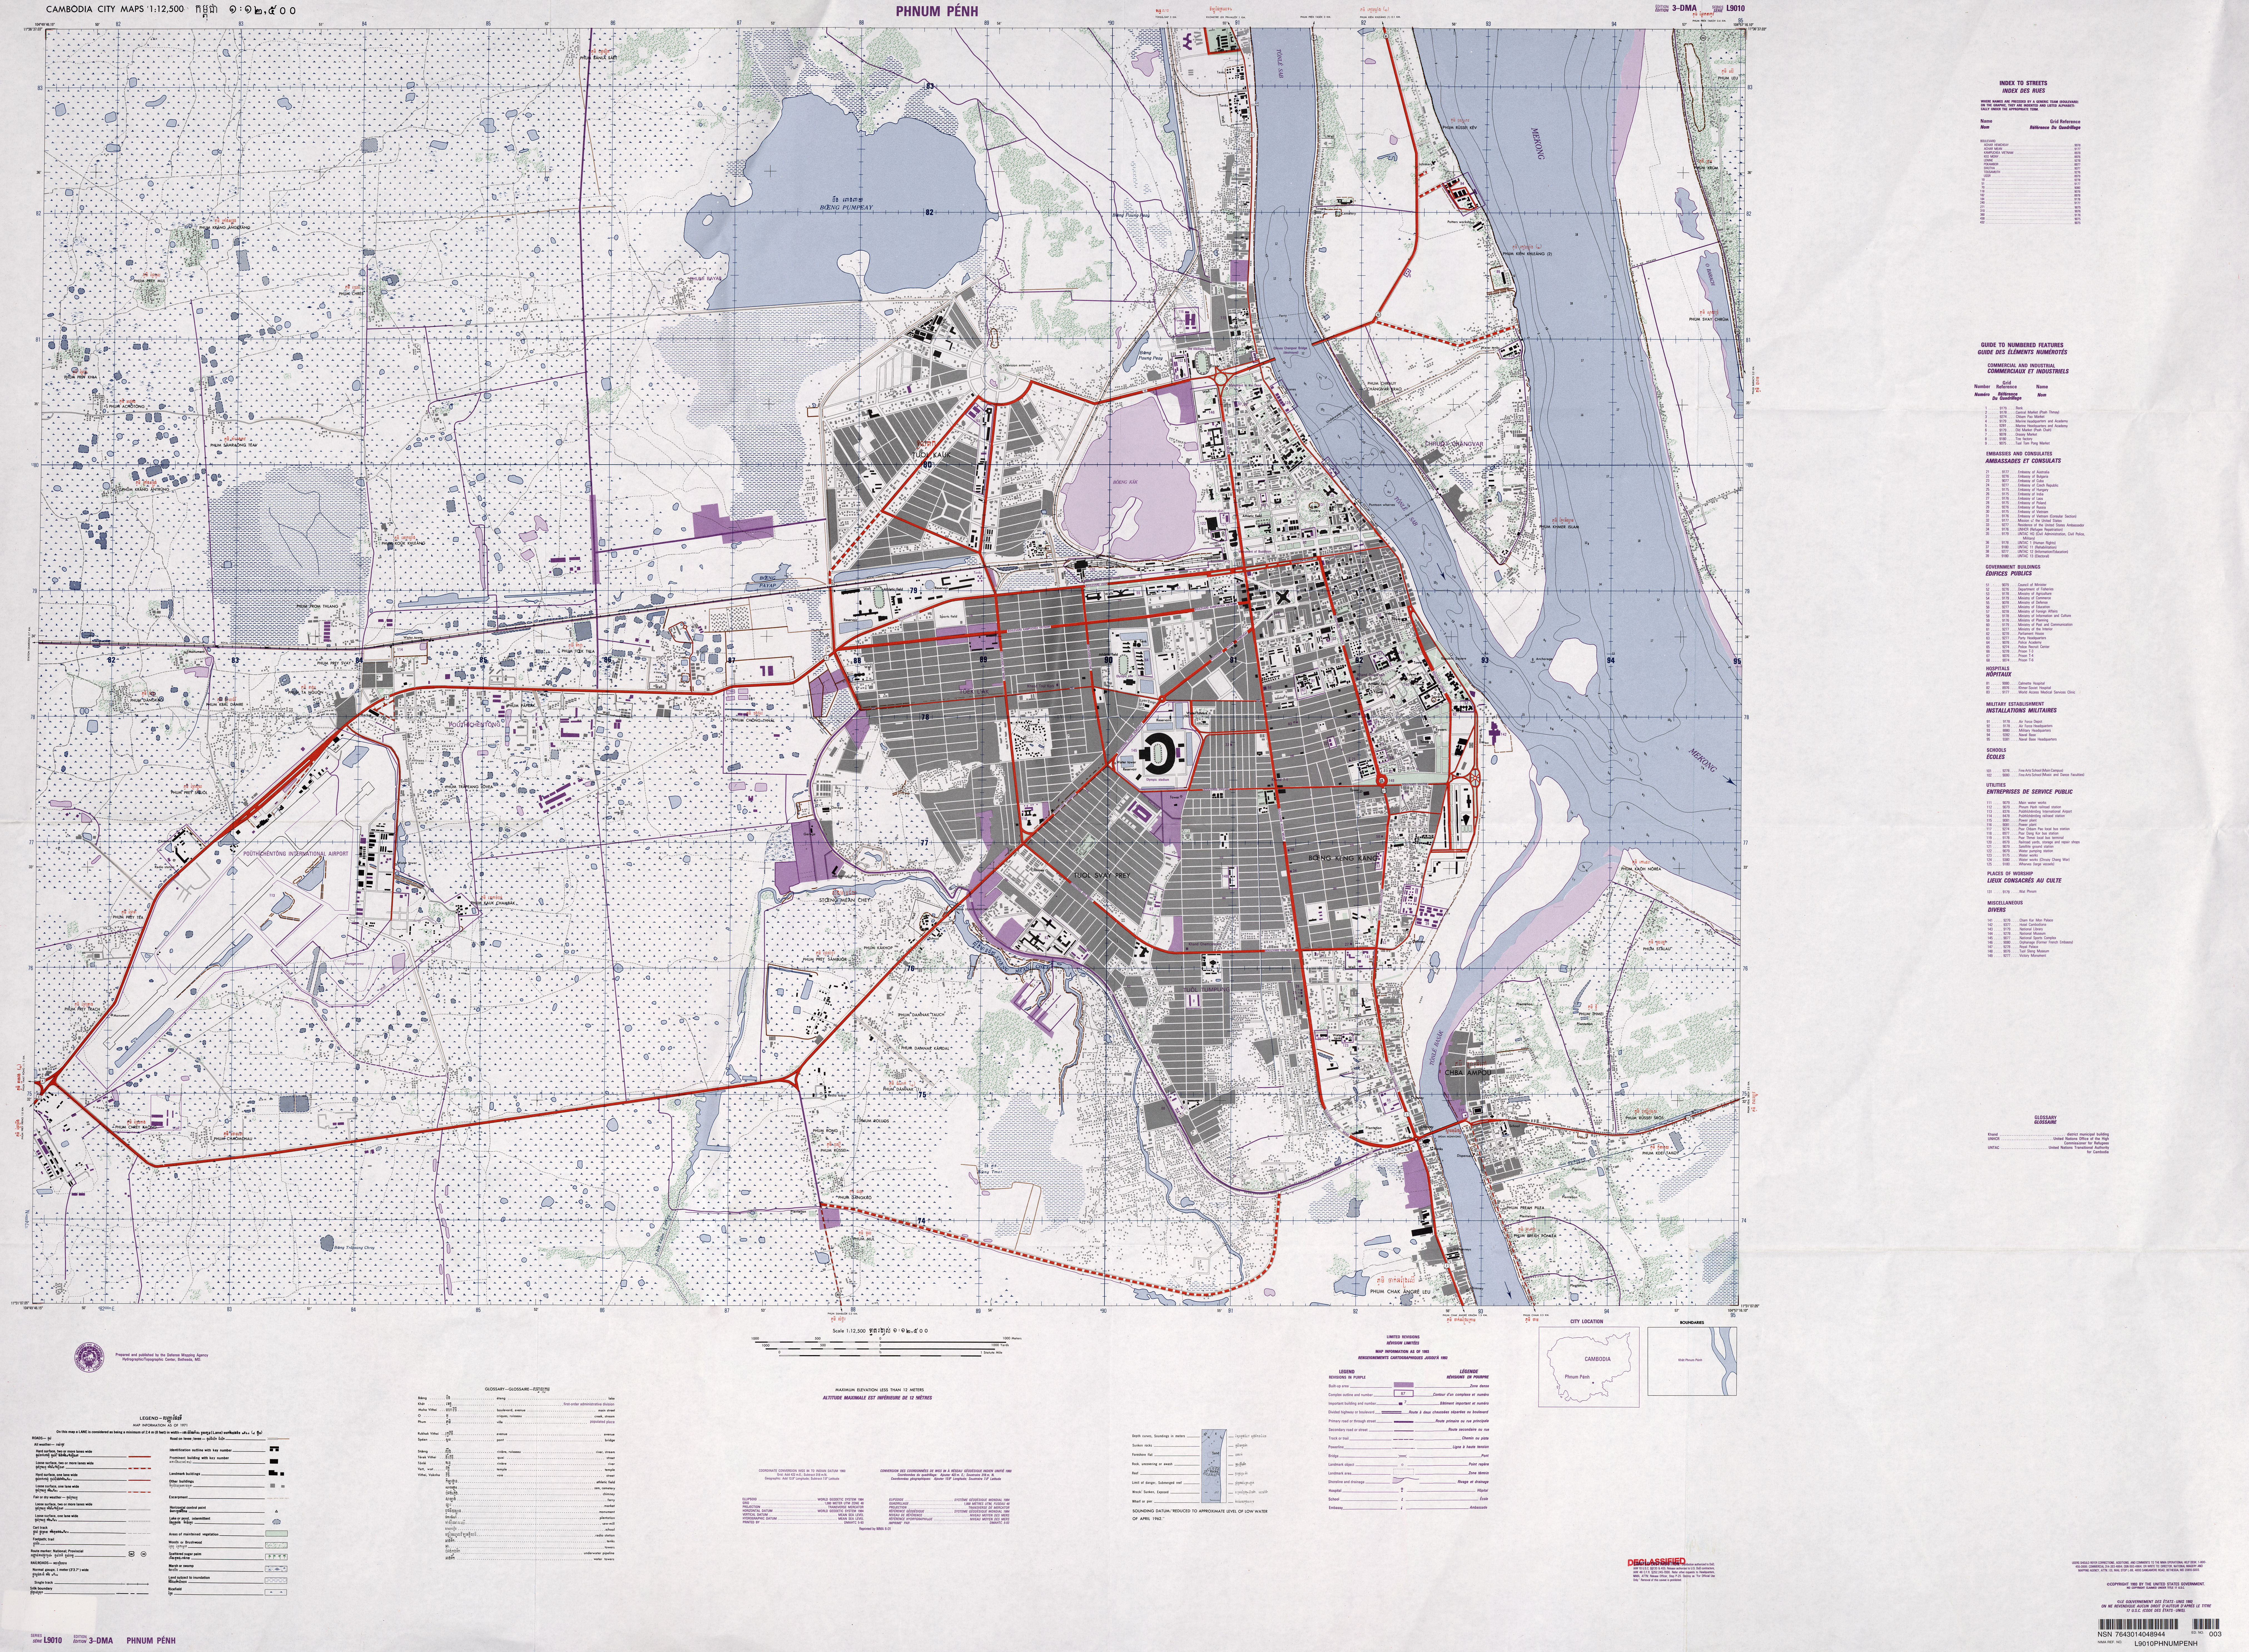 u s defense mapping agency author published by university of texas libraries